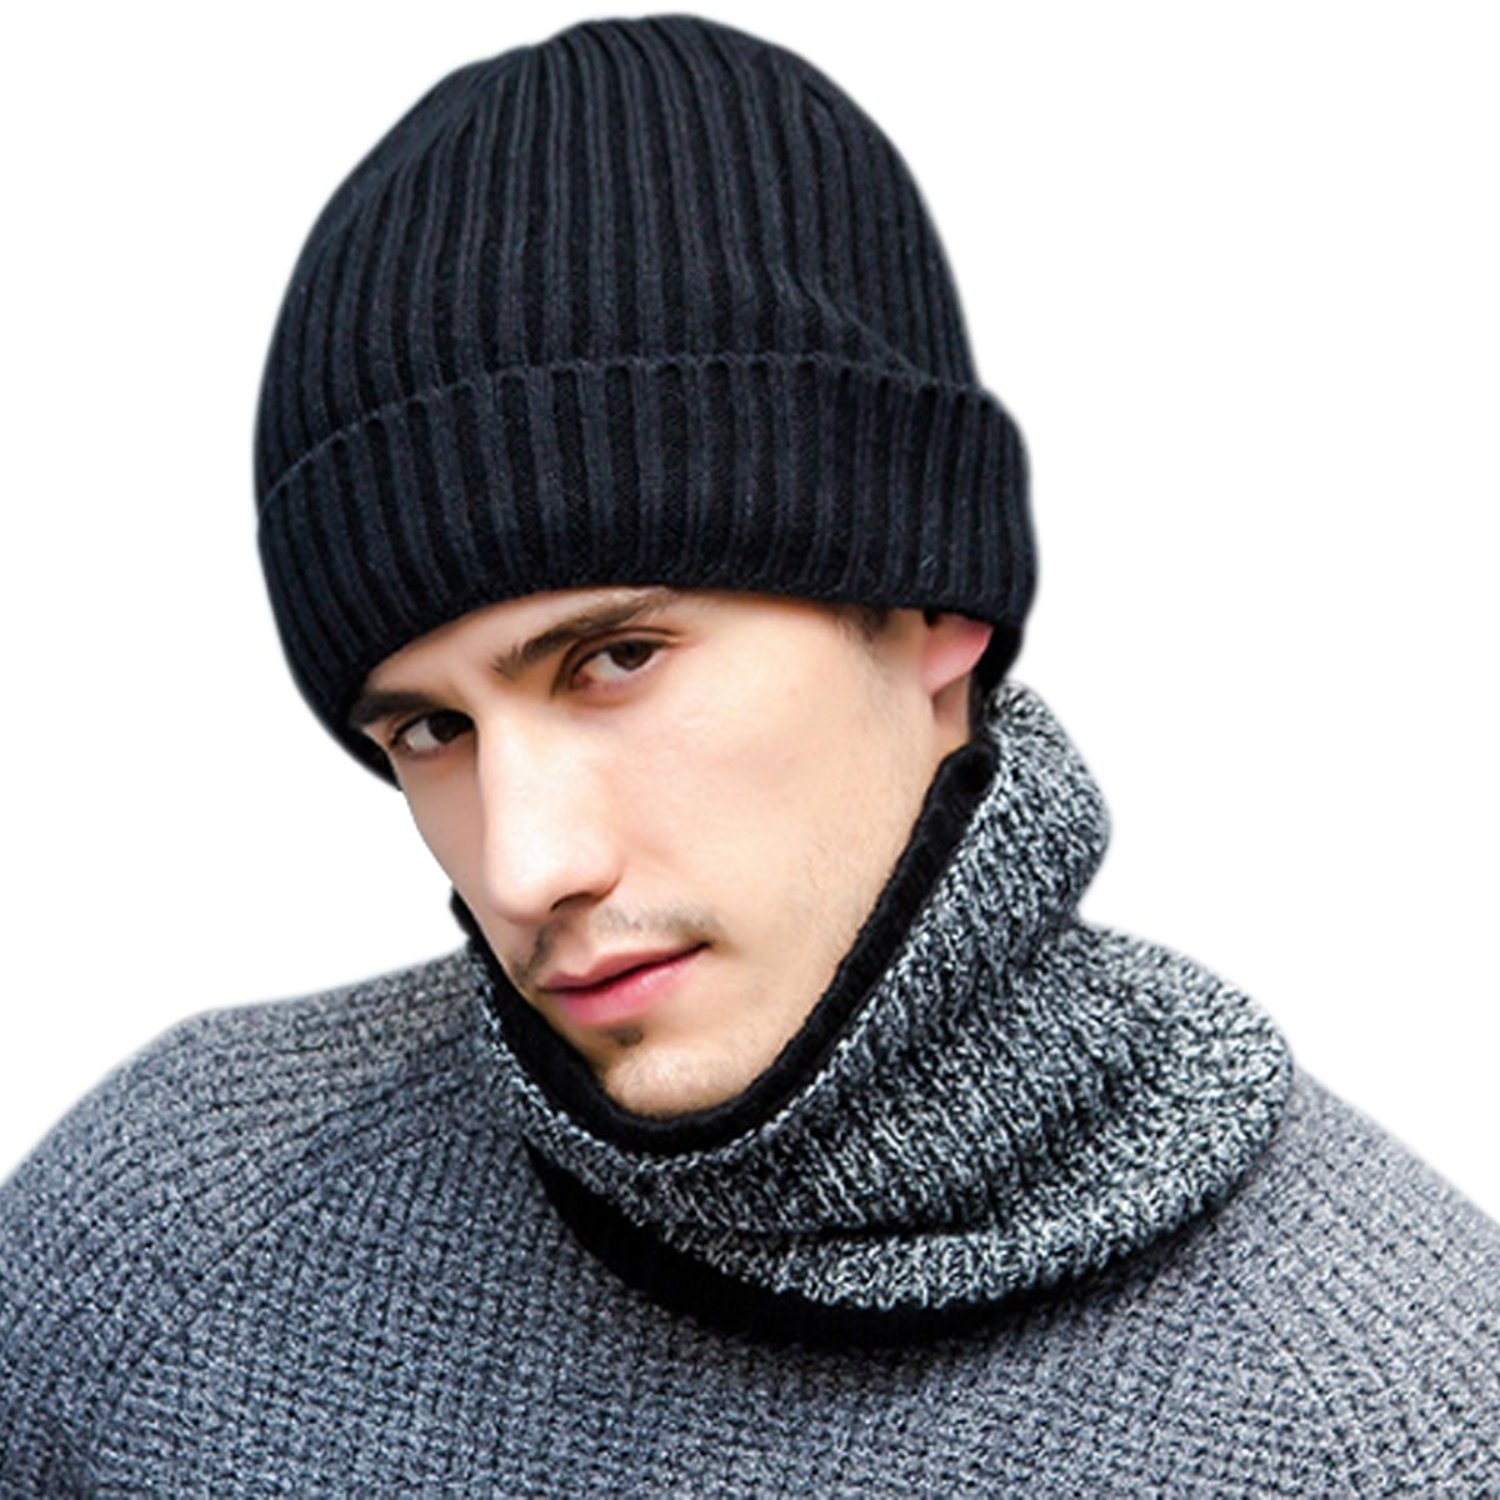 19a76b373b2 Get Quotations · JOYEBUY Stylish Men 3 Pcs Warm Winter Set Wool Knitted  Beanie Hat + Scarf + Touch